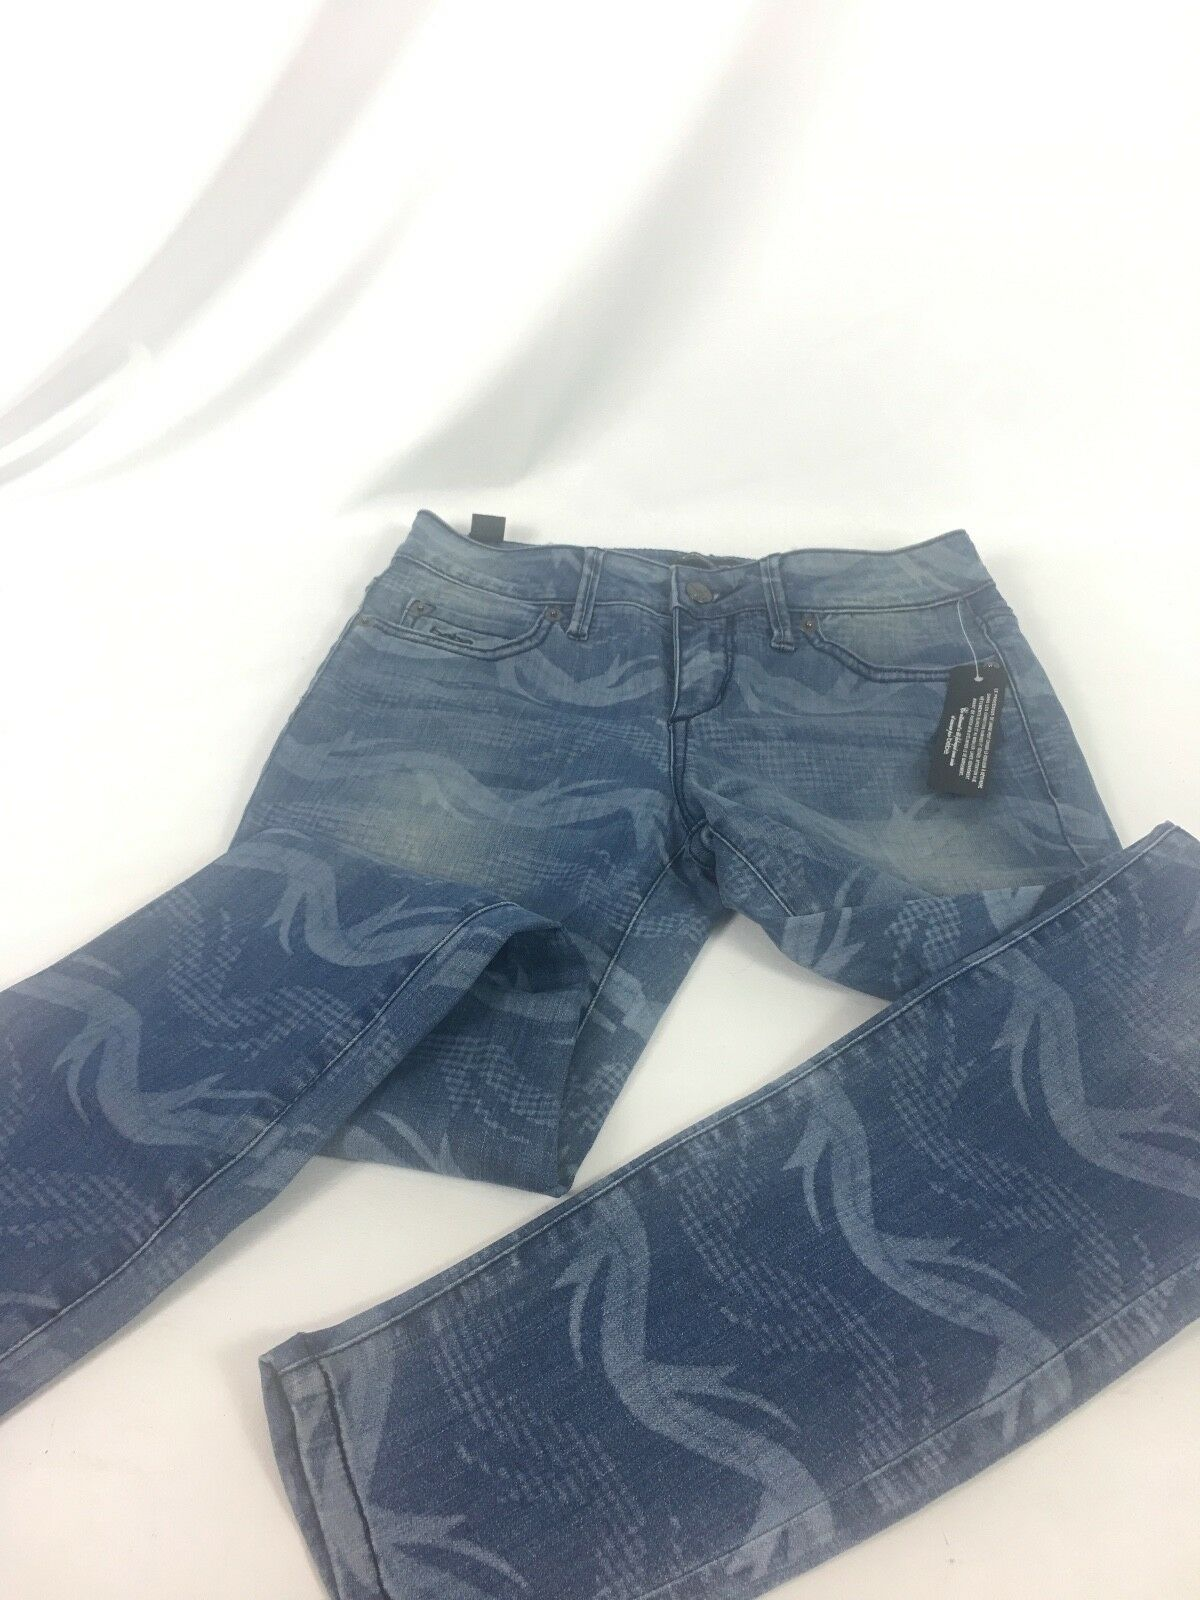 bebe  Tropical Tide Skinny Jeans bluee Pants Sz. 26 MSRP 119.00 NWT USA